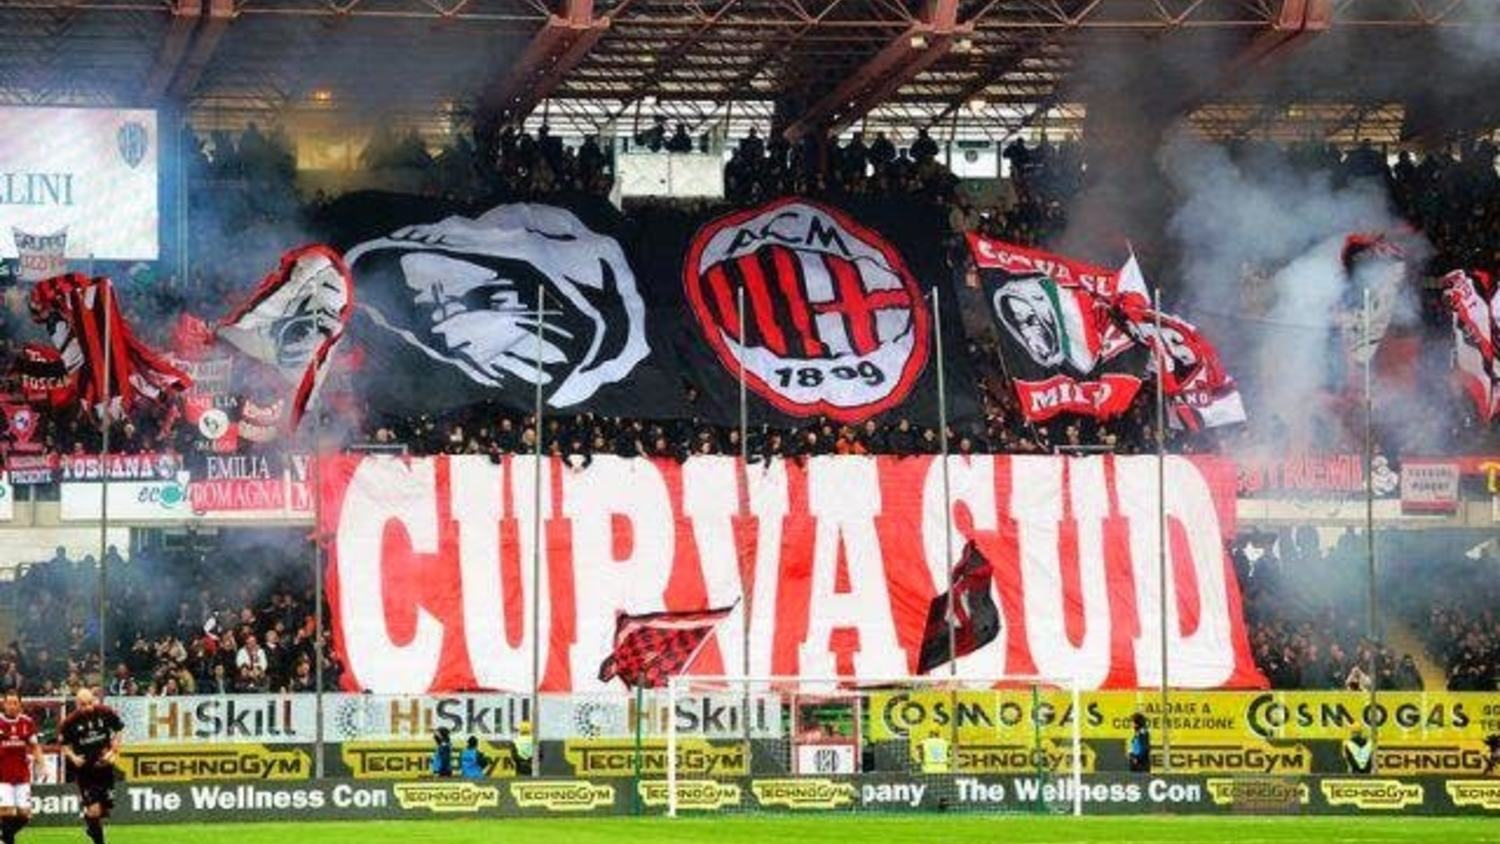 The Ultras Review: Curva Sud AC Milan